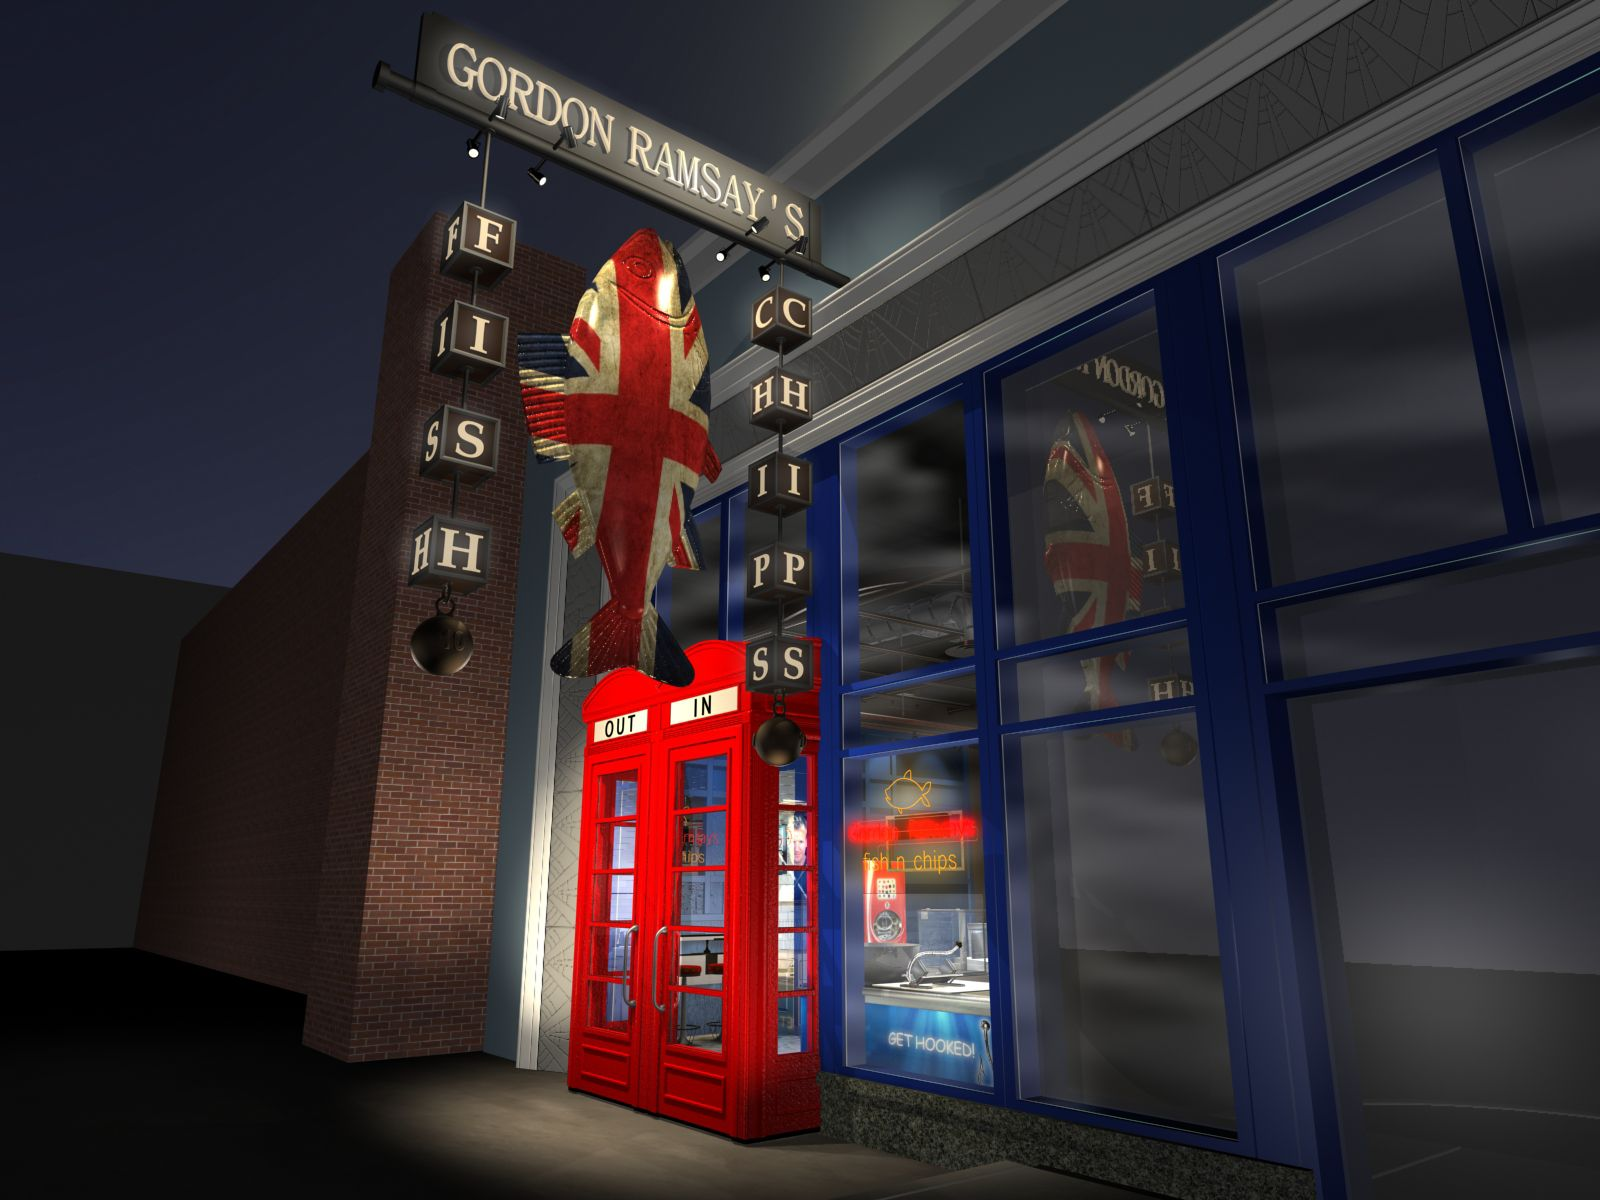 Confirmed gordon ramsay 39 s fish chips to the linq for Gordon ramsay las vegas fish and chips